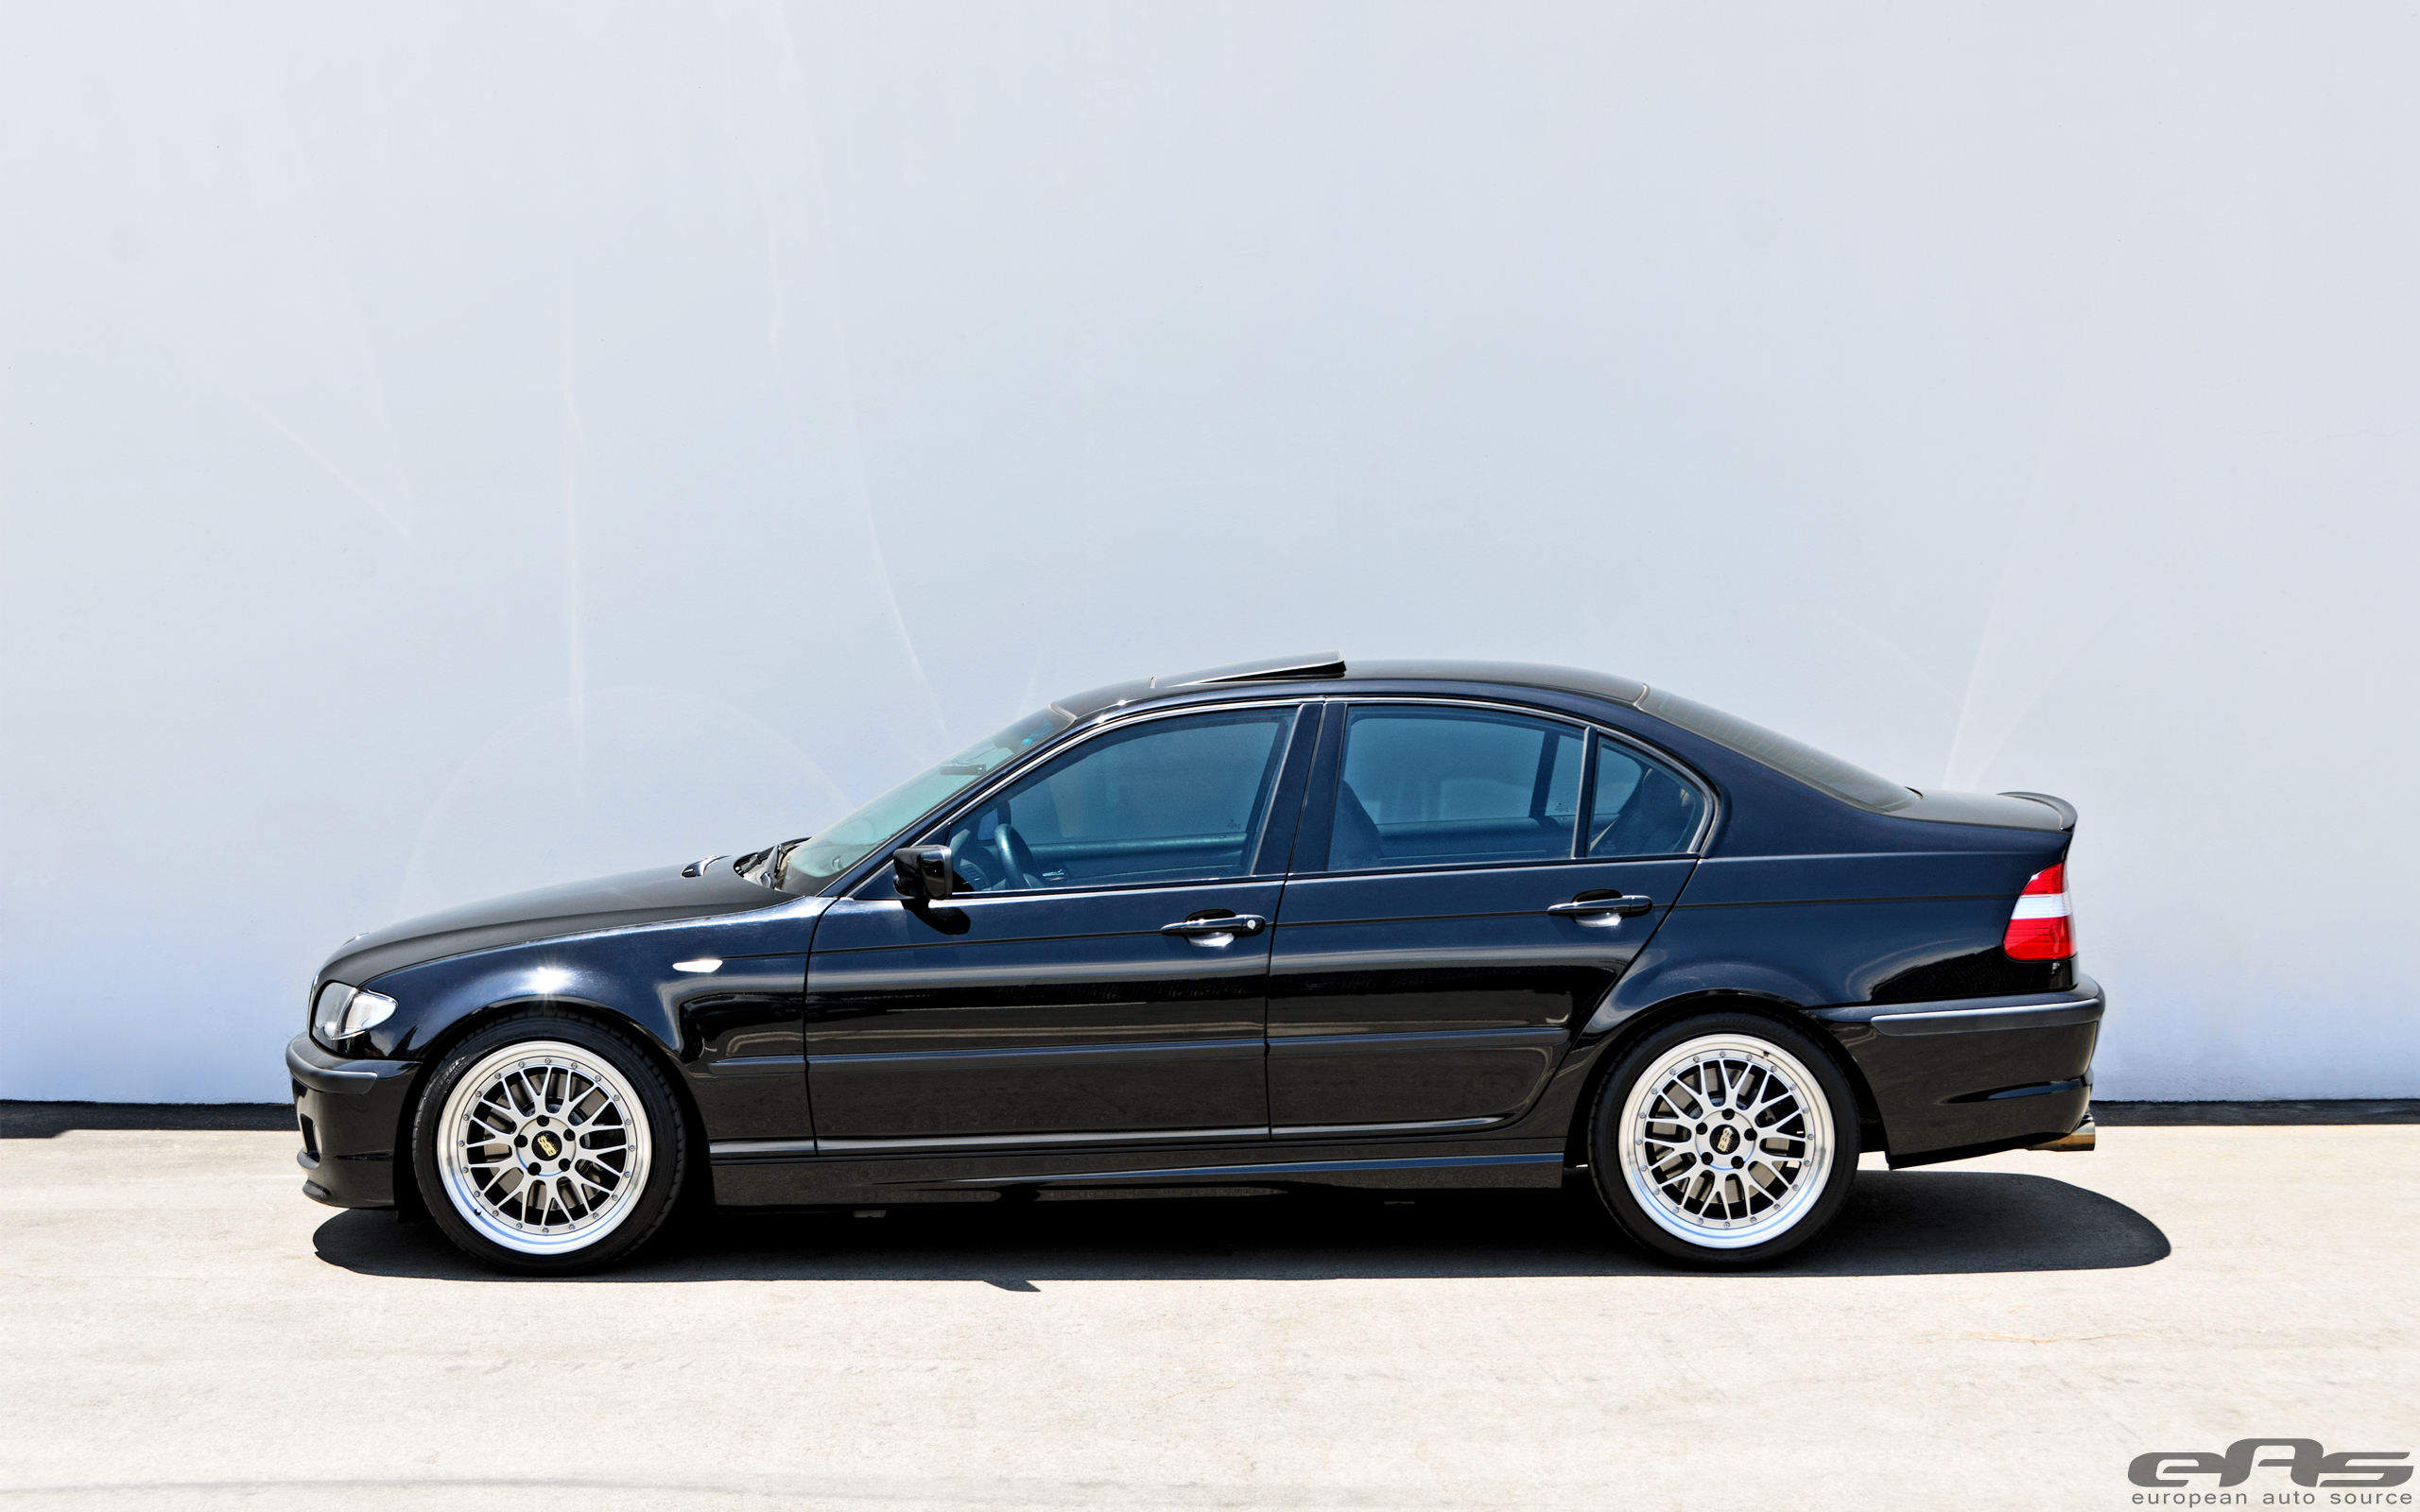 E46 330i Zhp Gets Supercharged Bmw Performance Parts Services